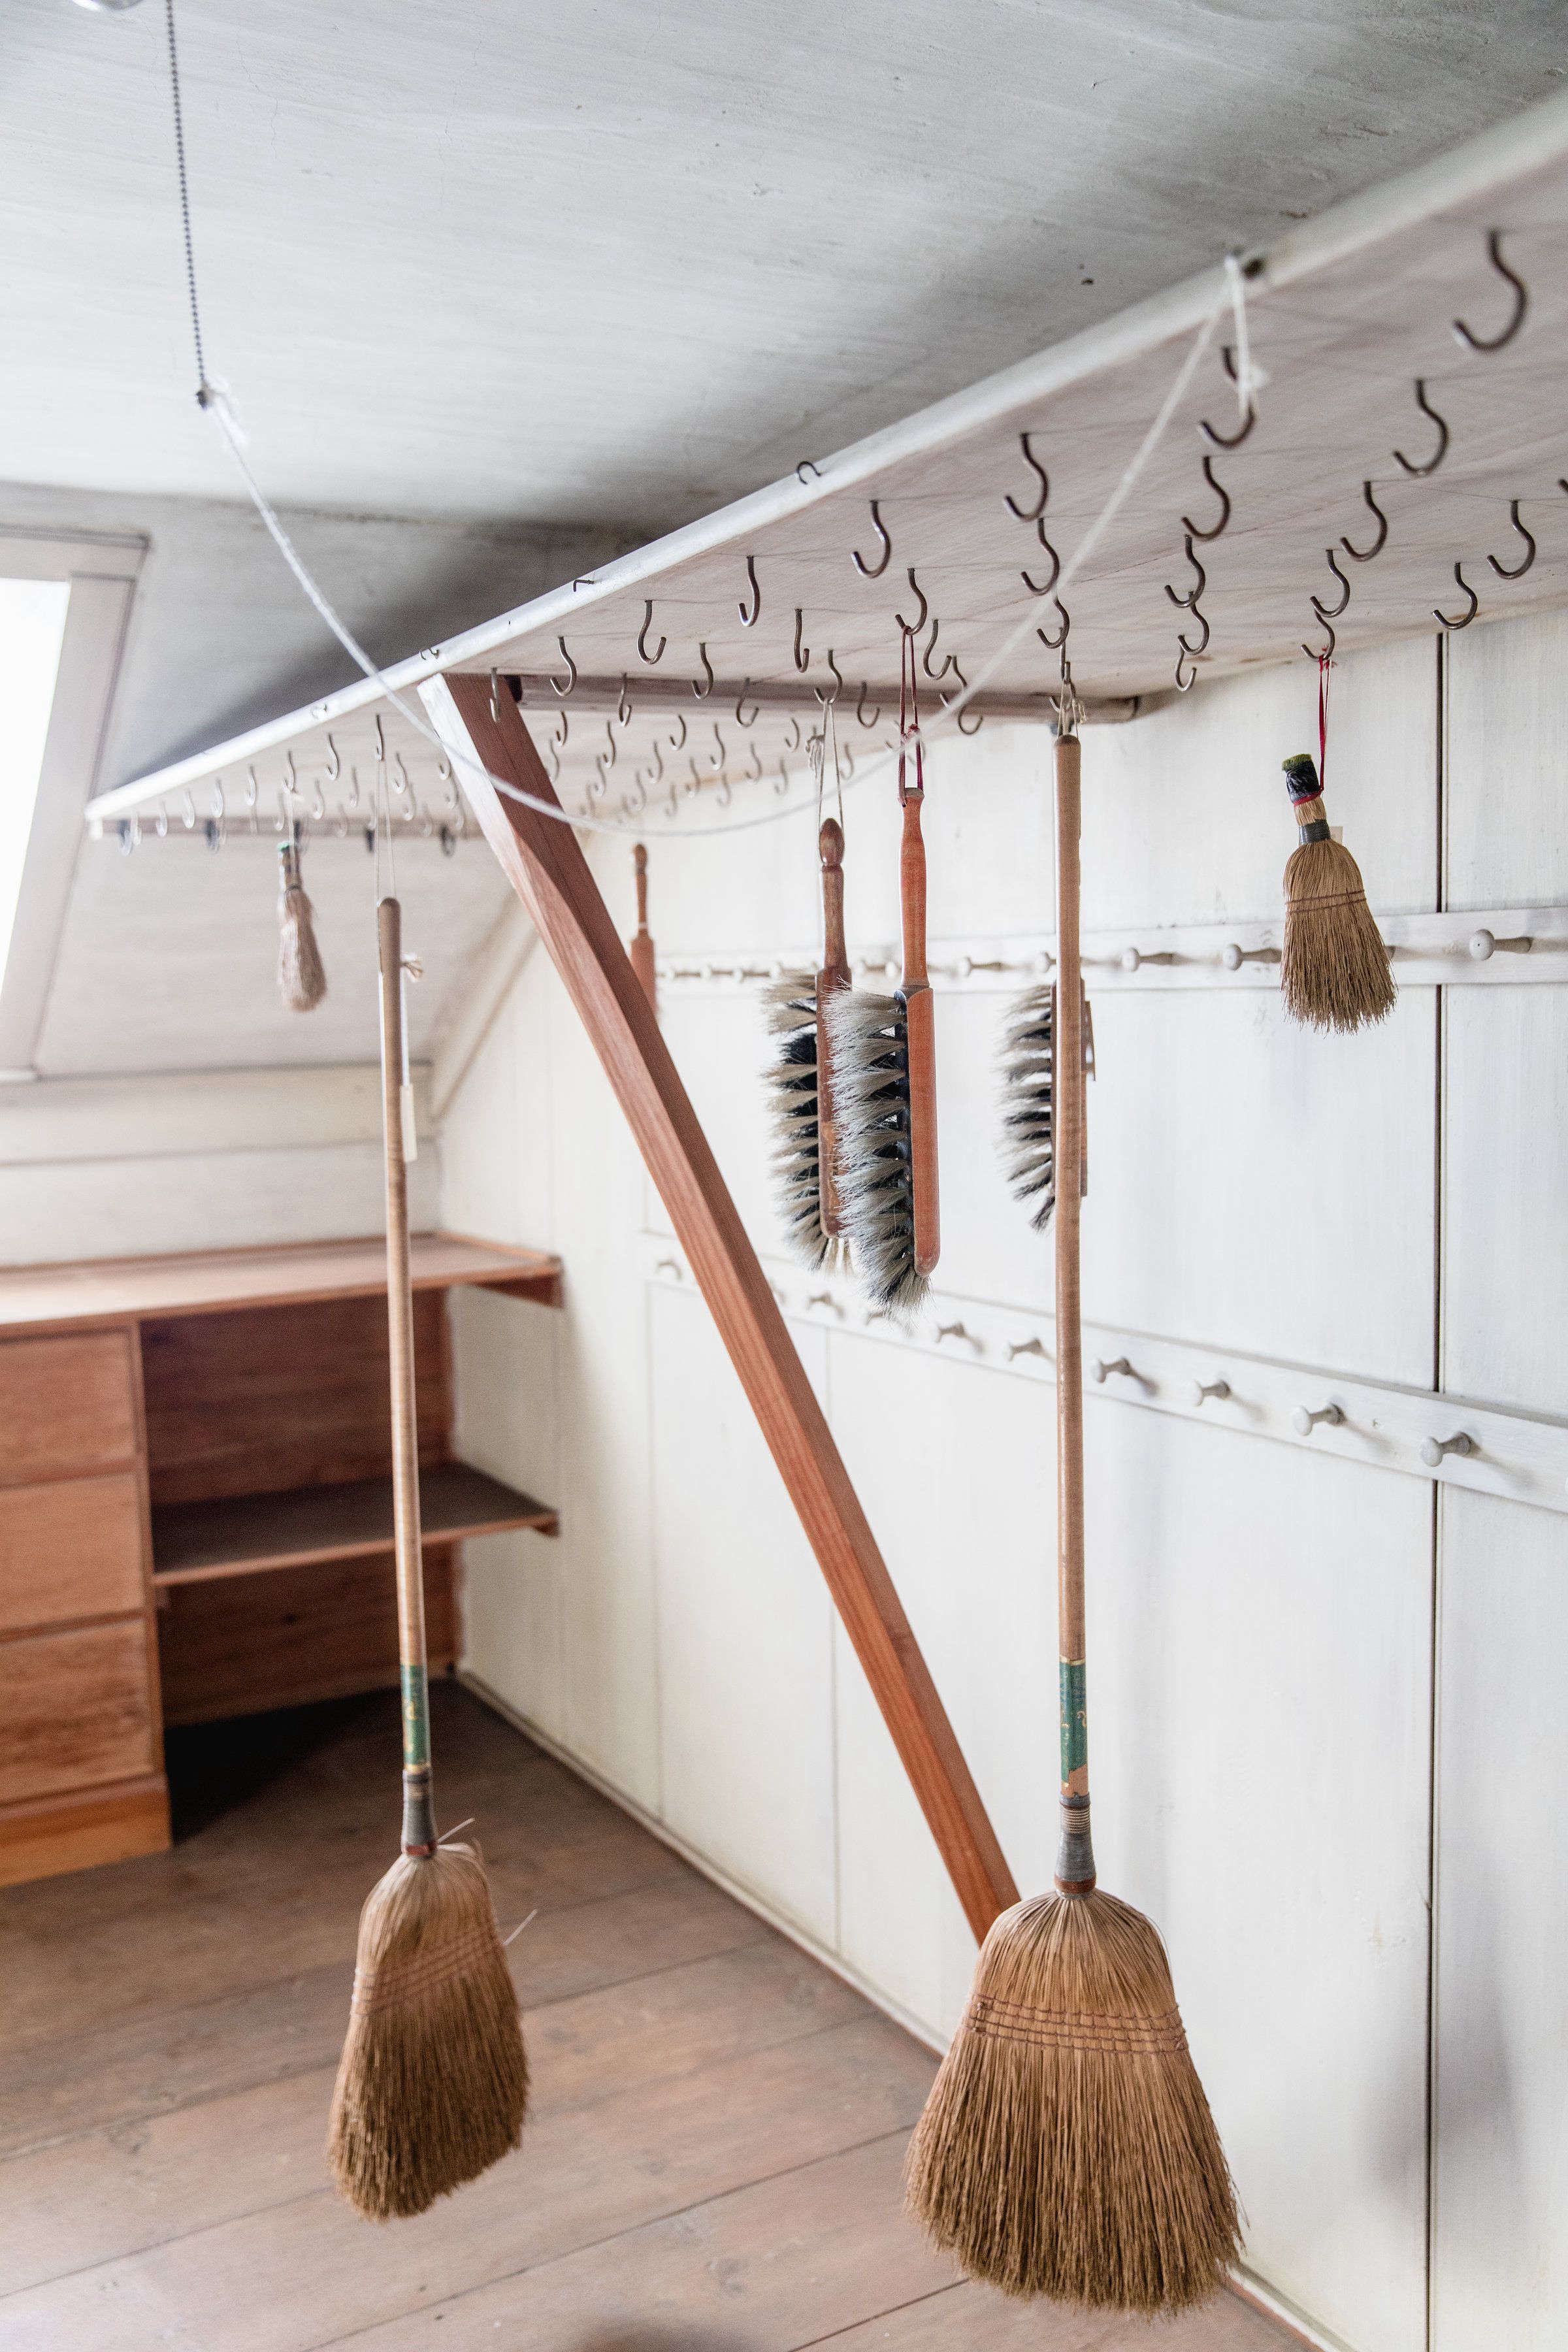 Hooks in Closet at Canterbury Shaker Village, Photo by Erin Little